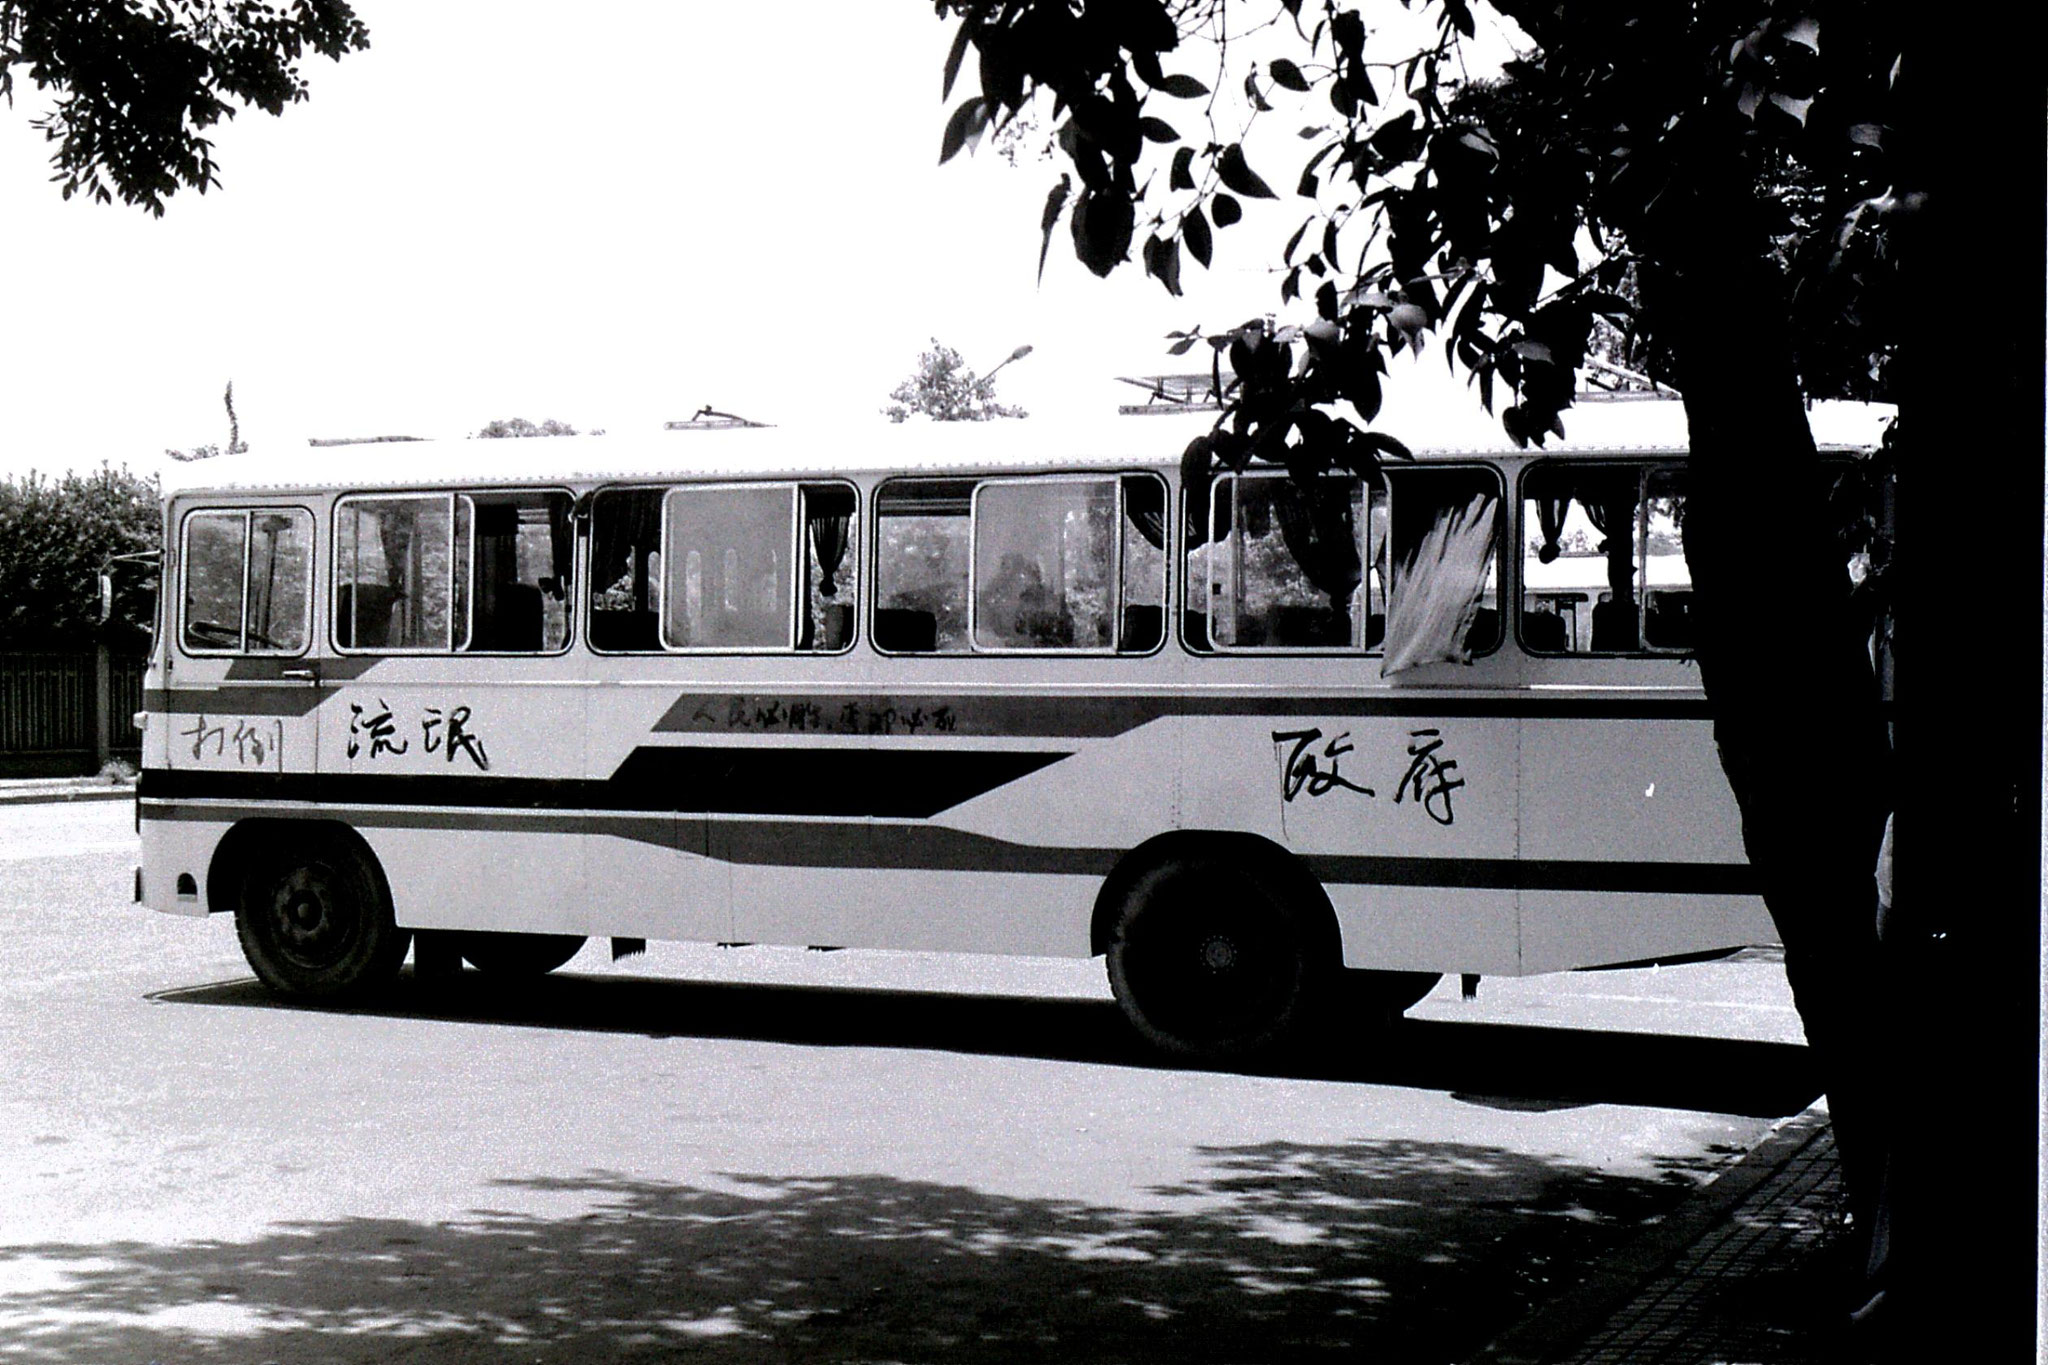 6/6/1989: 34: bus outside Liu He with slogan